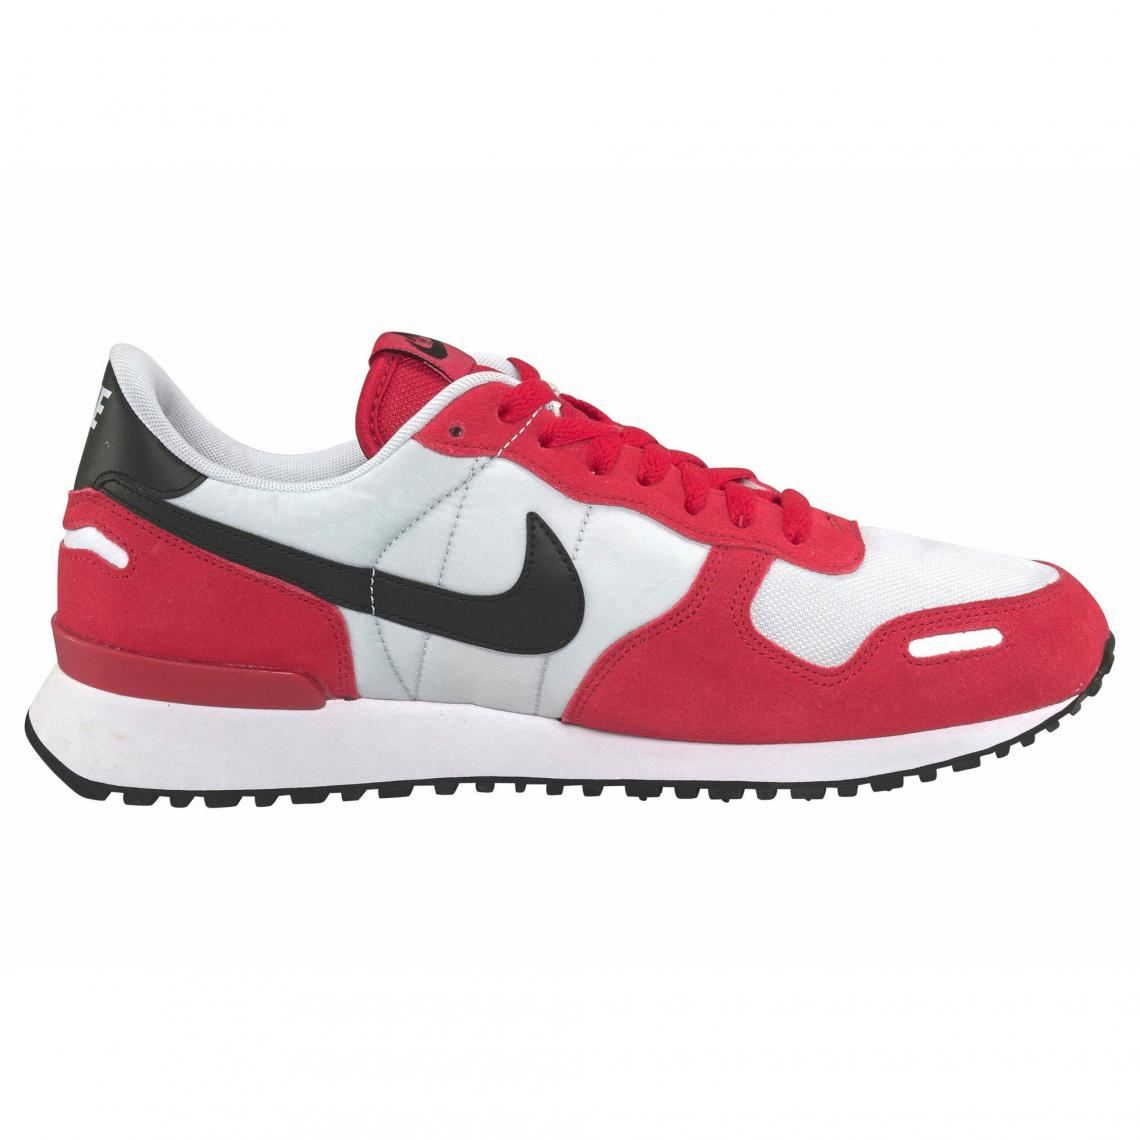 low priced ff66c 32987 Toutes les chaussures Nike